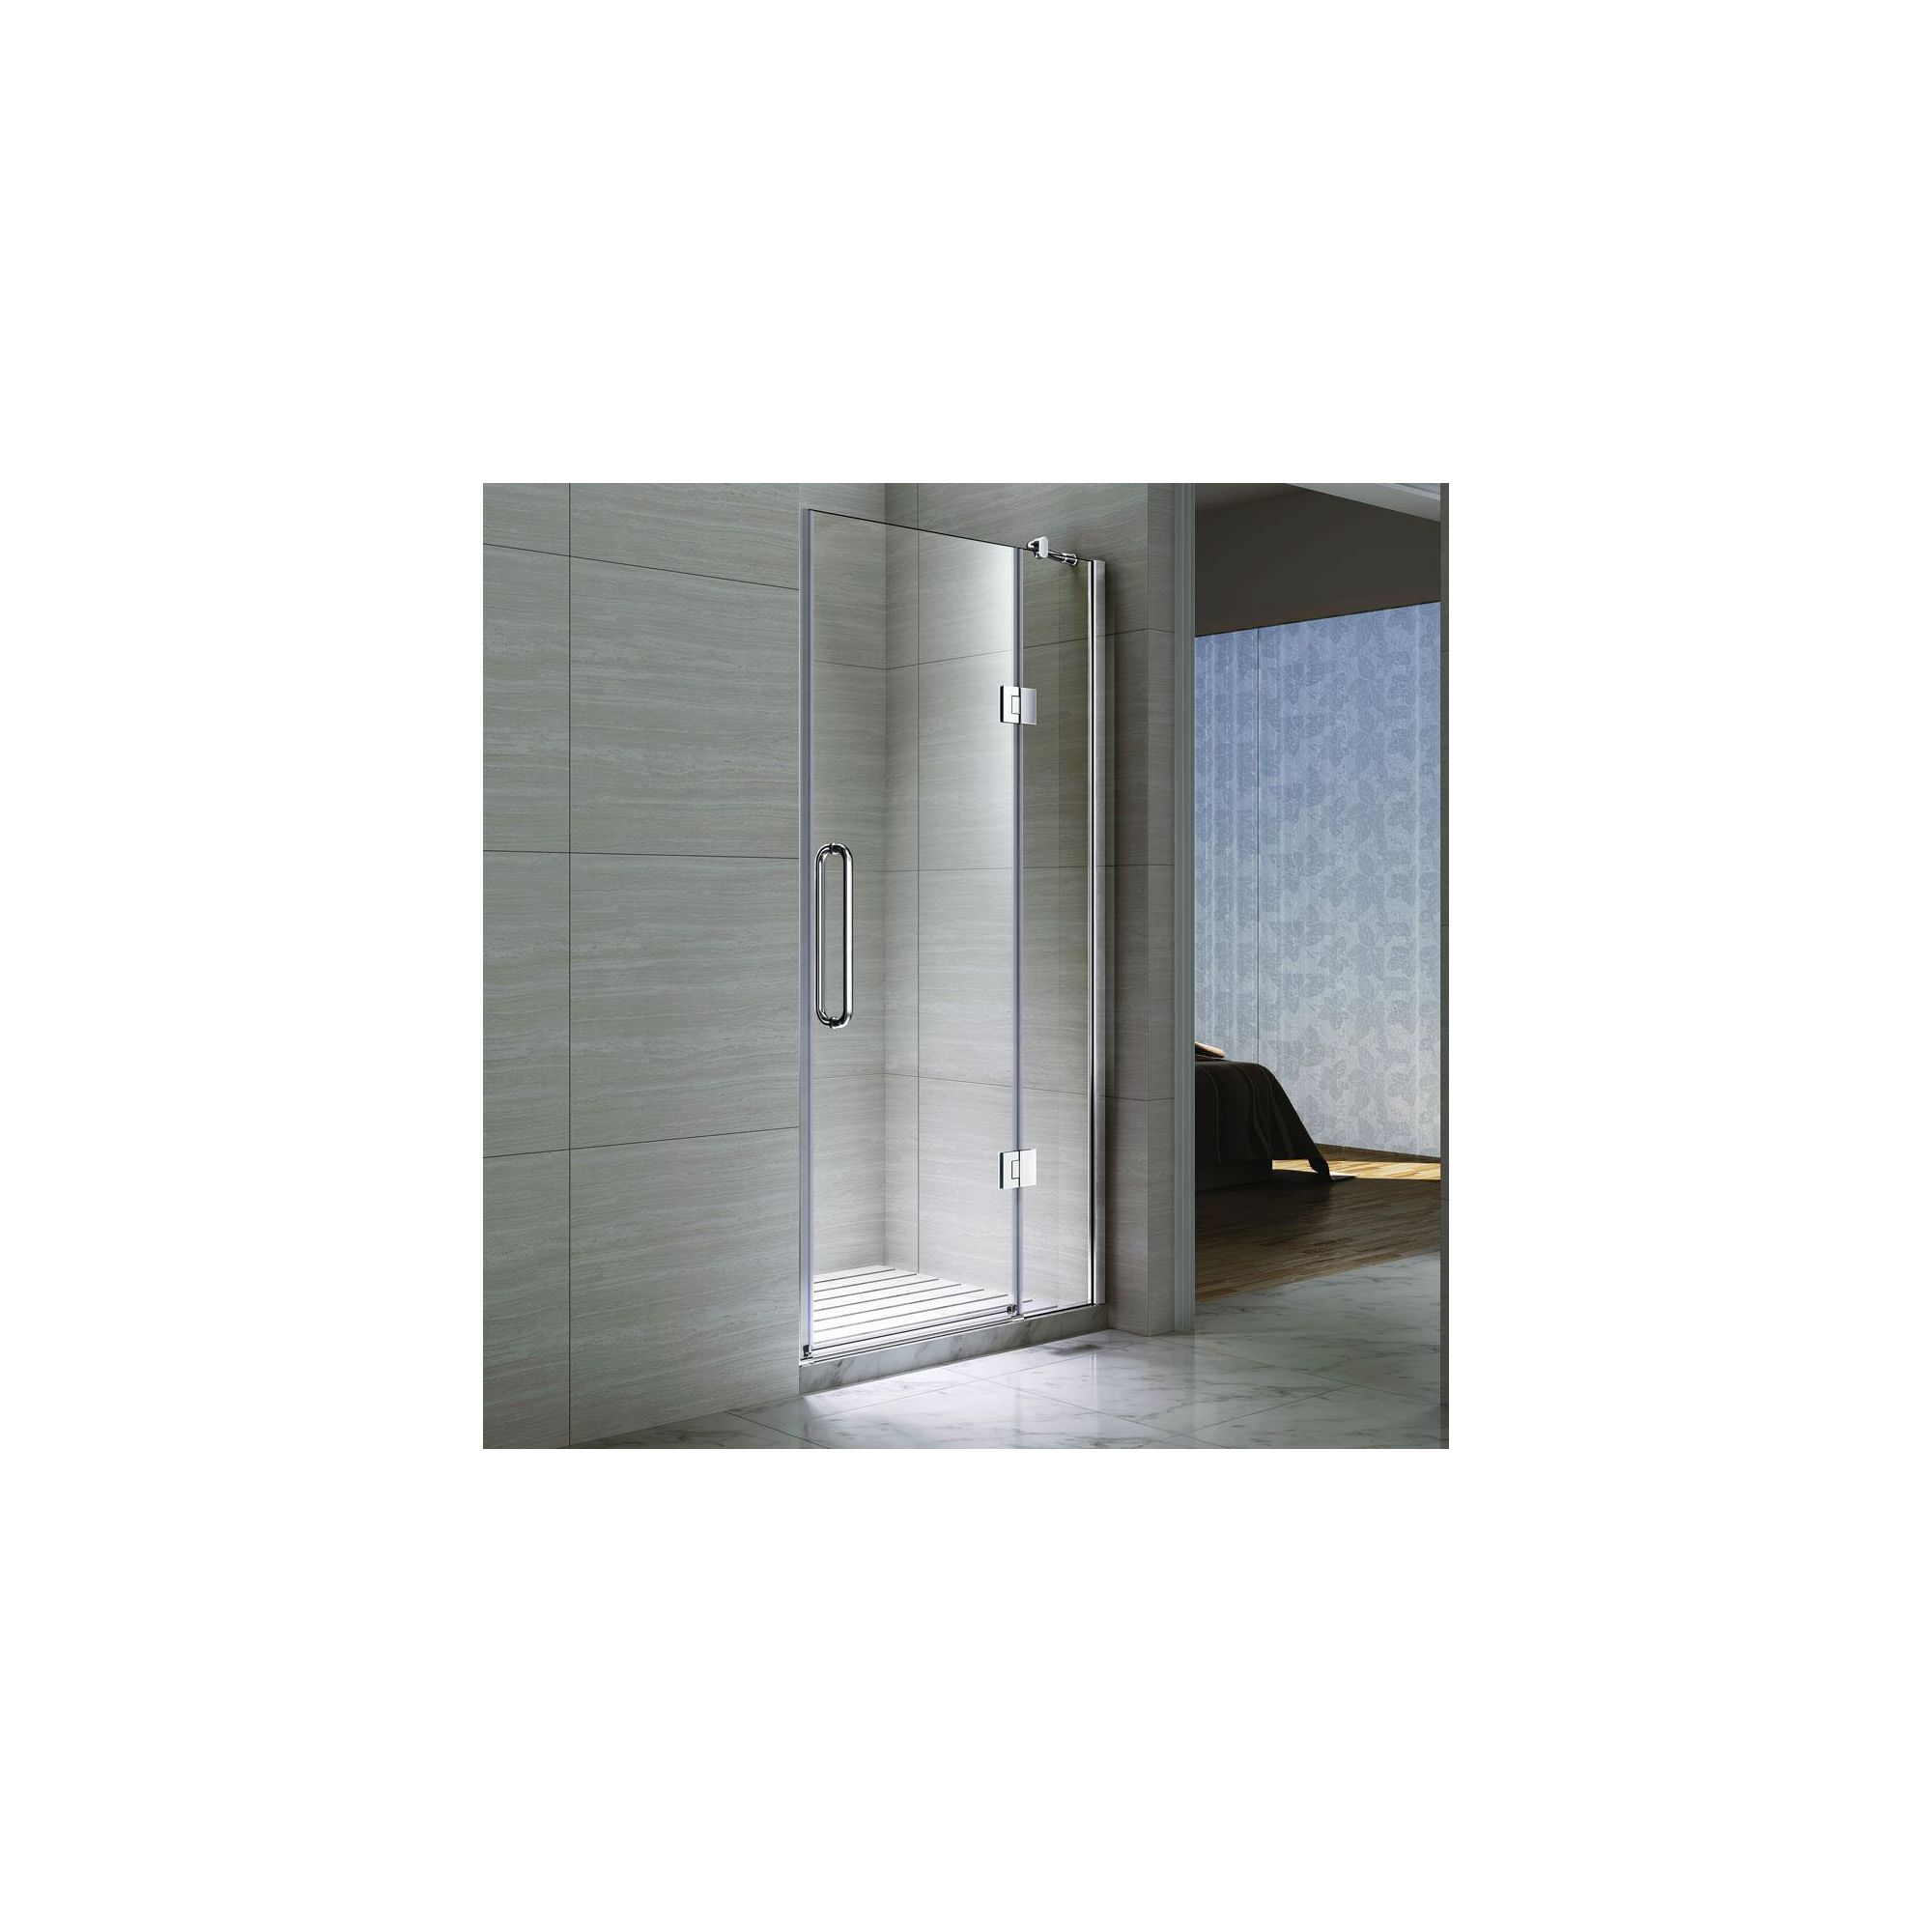 Desire Ten Inline Hinged Shower Door, 1200mm Wide, Semi-Frameless, 10mm Glass at Tesco Direct